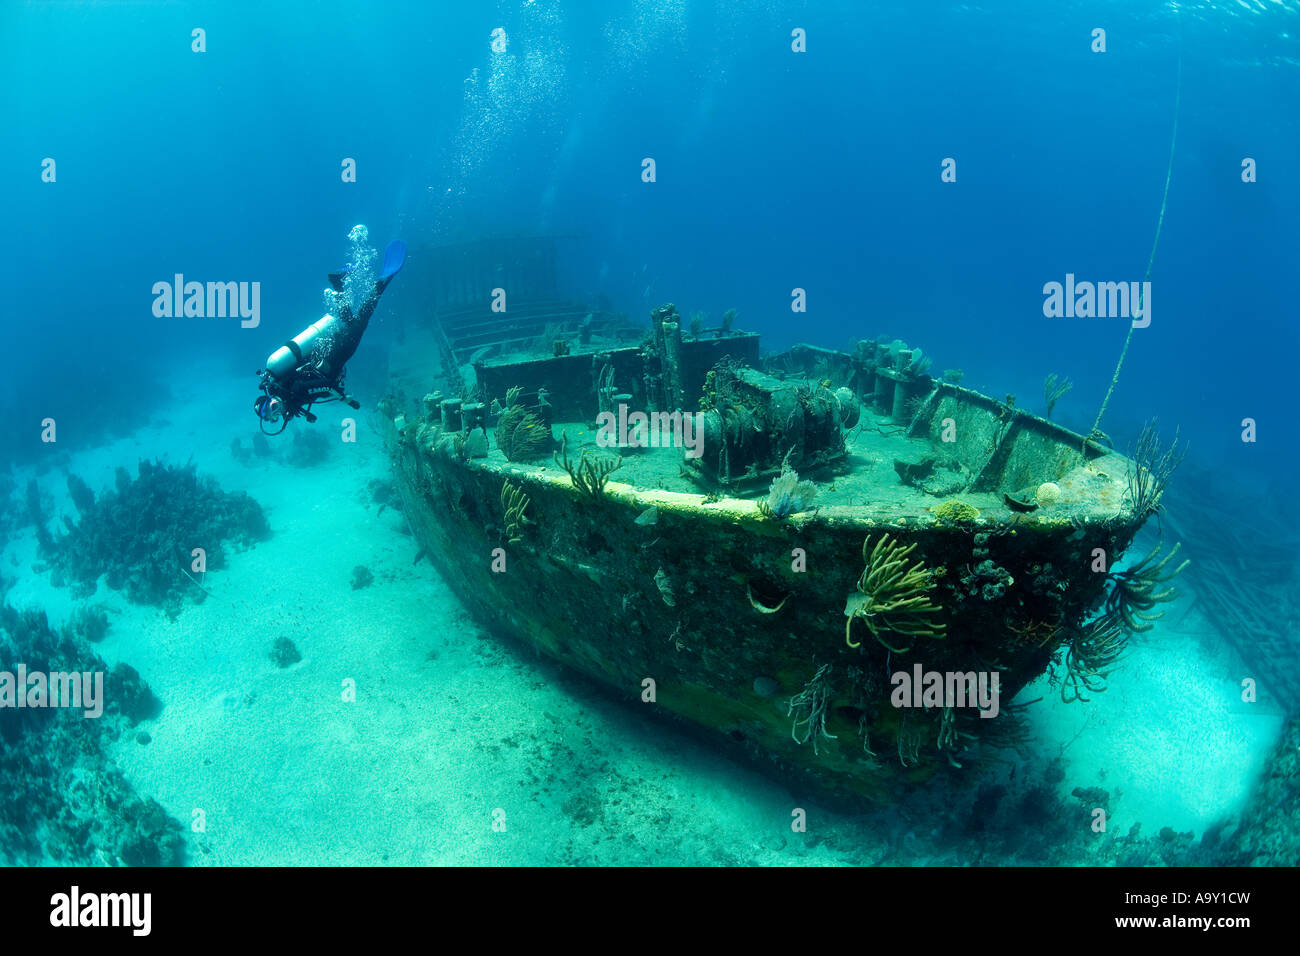 Shipwreck of the Willaurie a 150 foot island freighter as seen in its underwater environment by a scuba diver - Stock Image